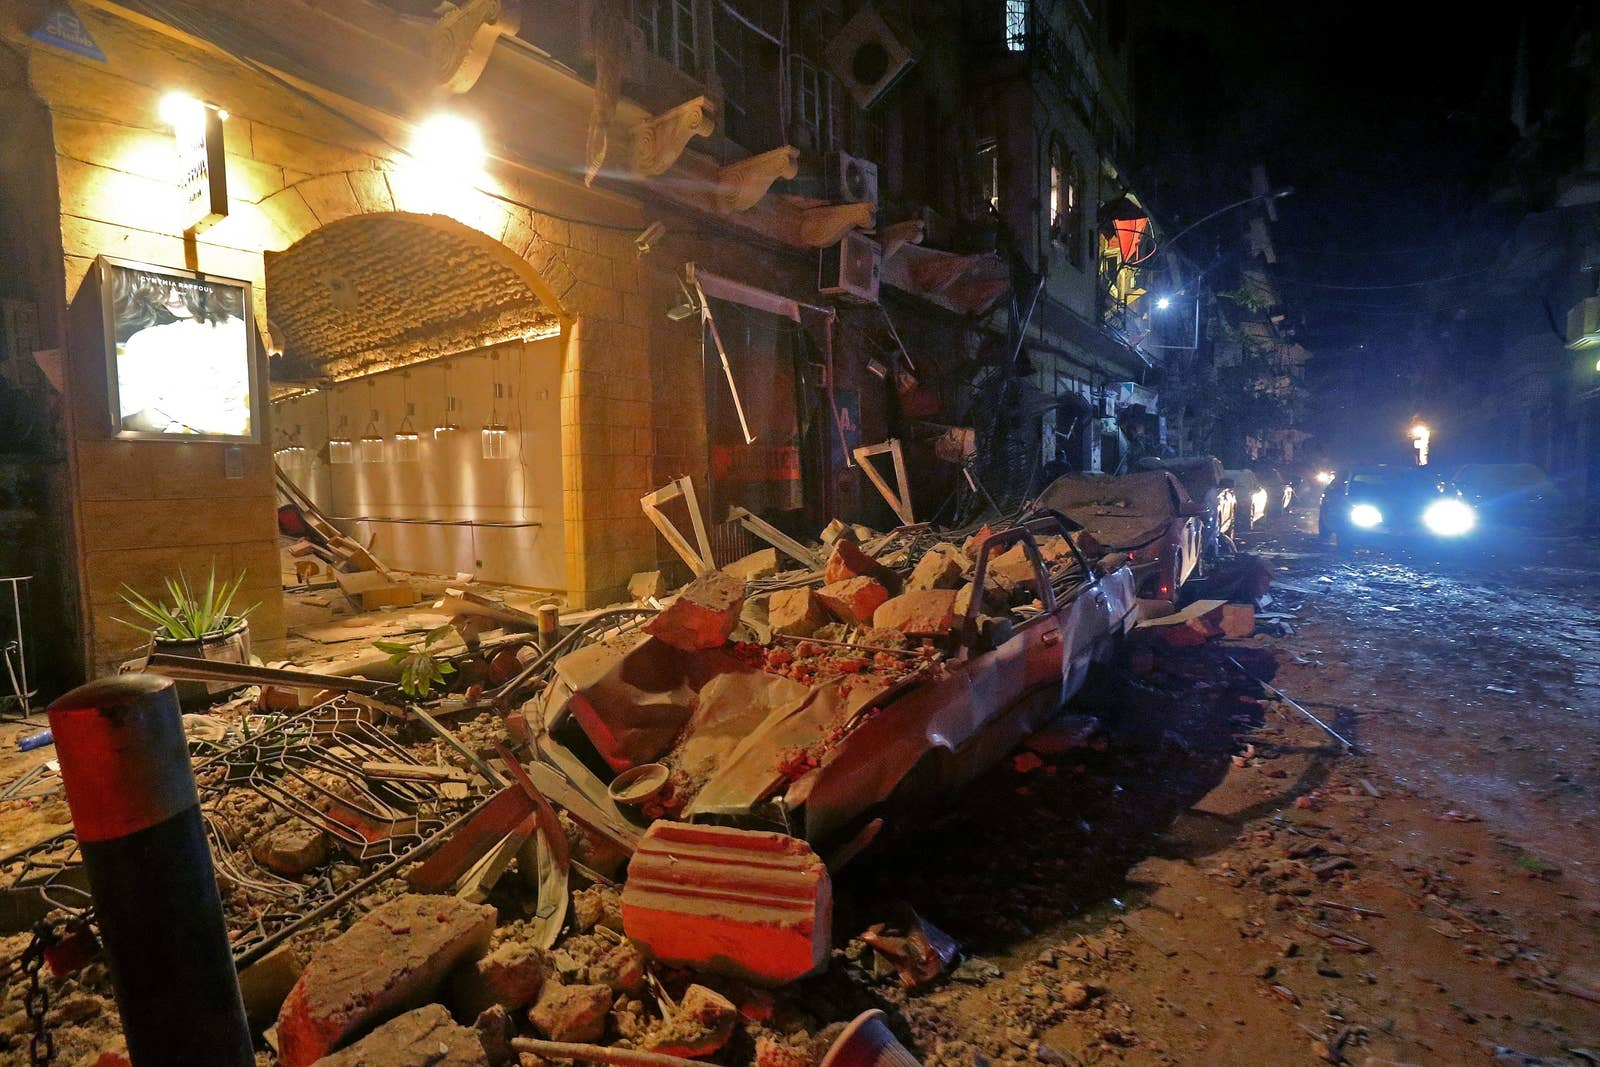 Cars are buried in rubble and buildings destroyed on a street at night